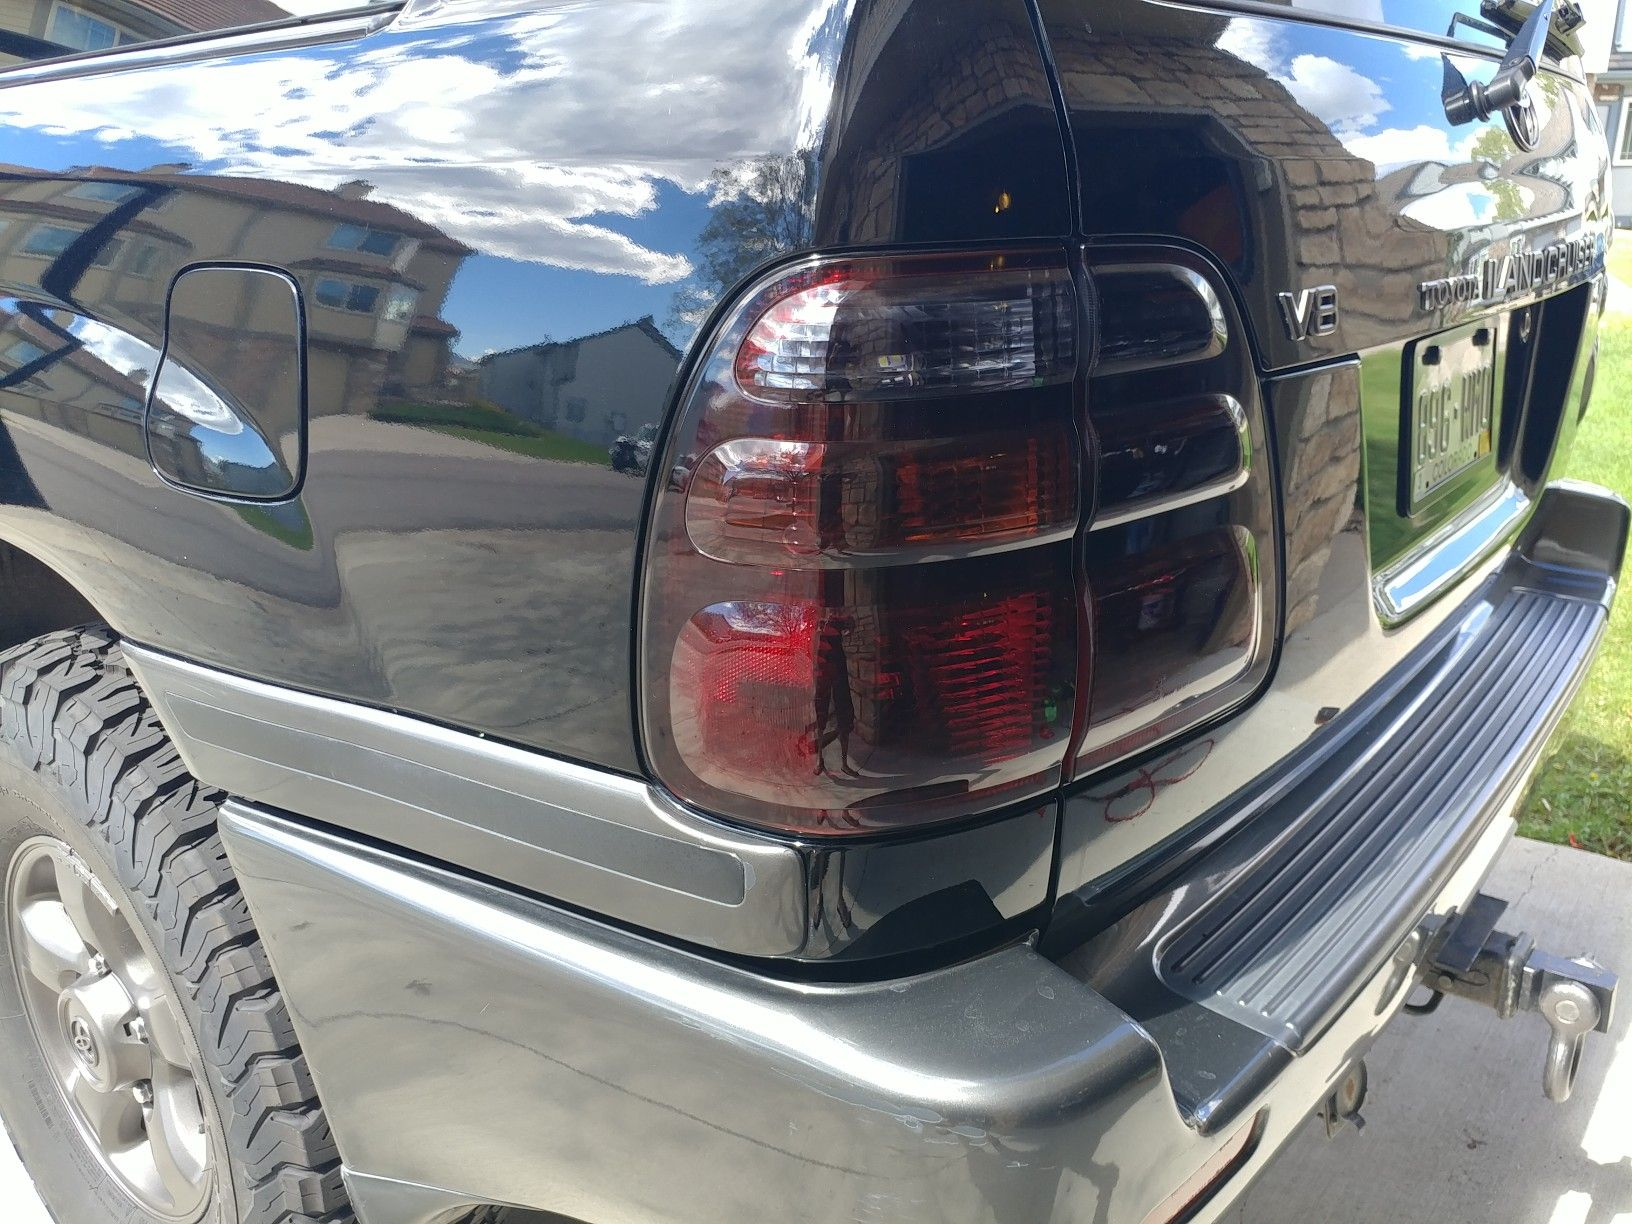 Blacked Out Tail Lights Using Vht Night Shades Toyota Camionetas Toyota Camionetas